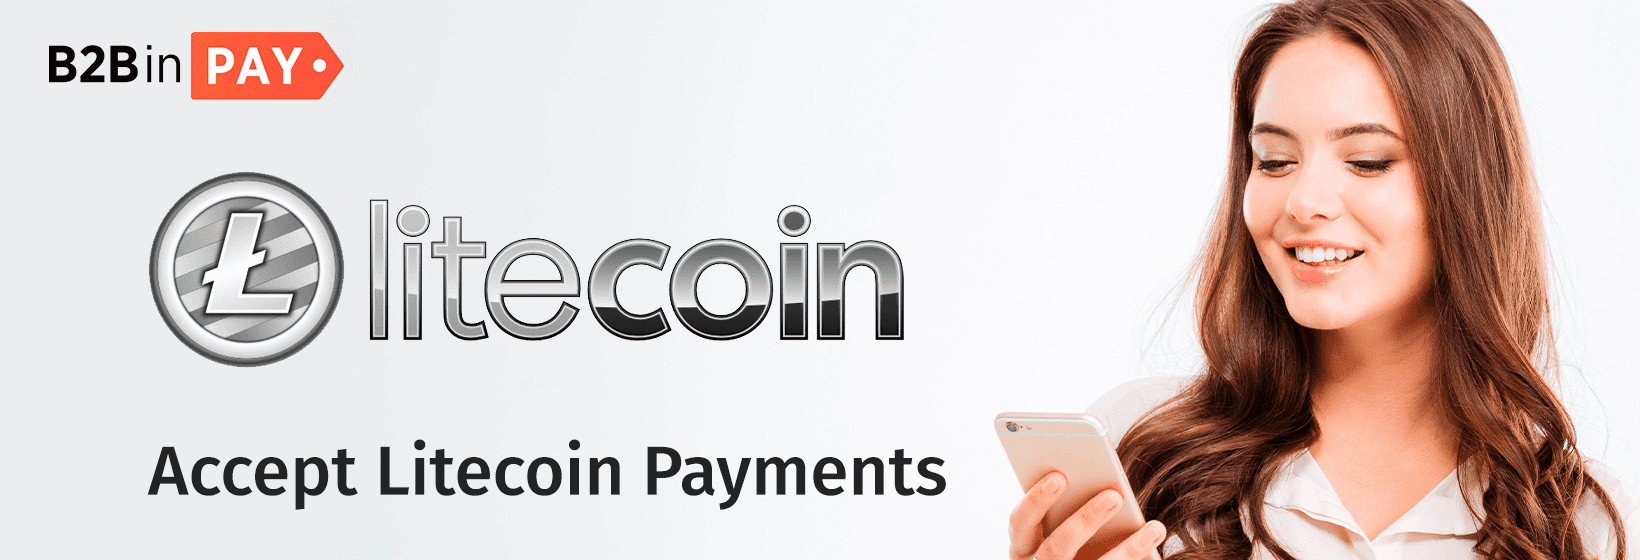 How to Accept Litecoin Payments